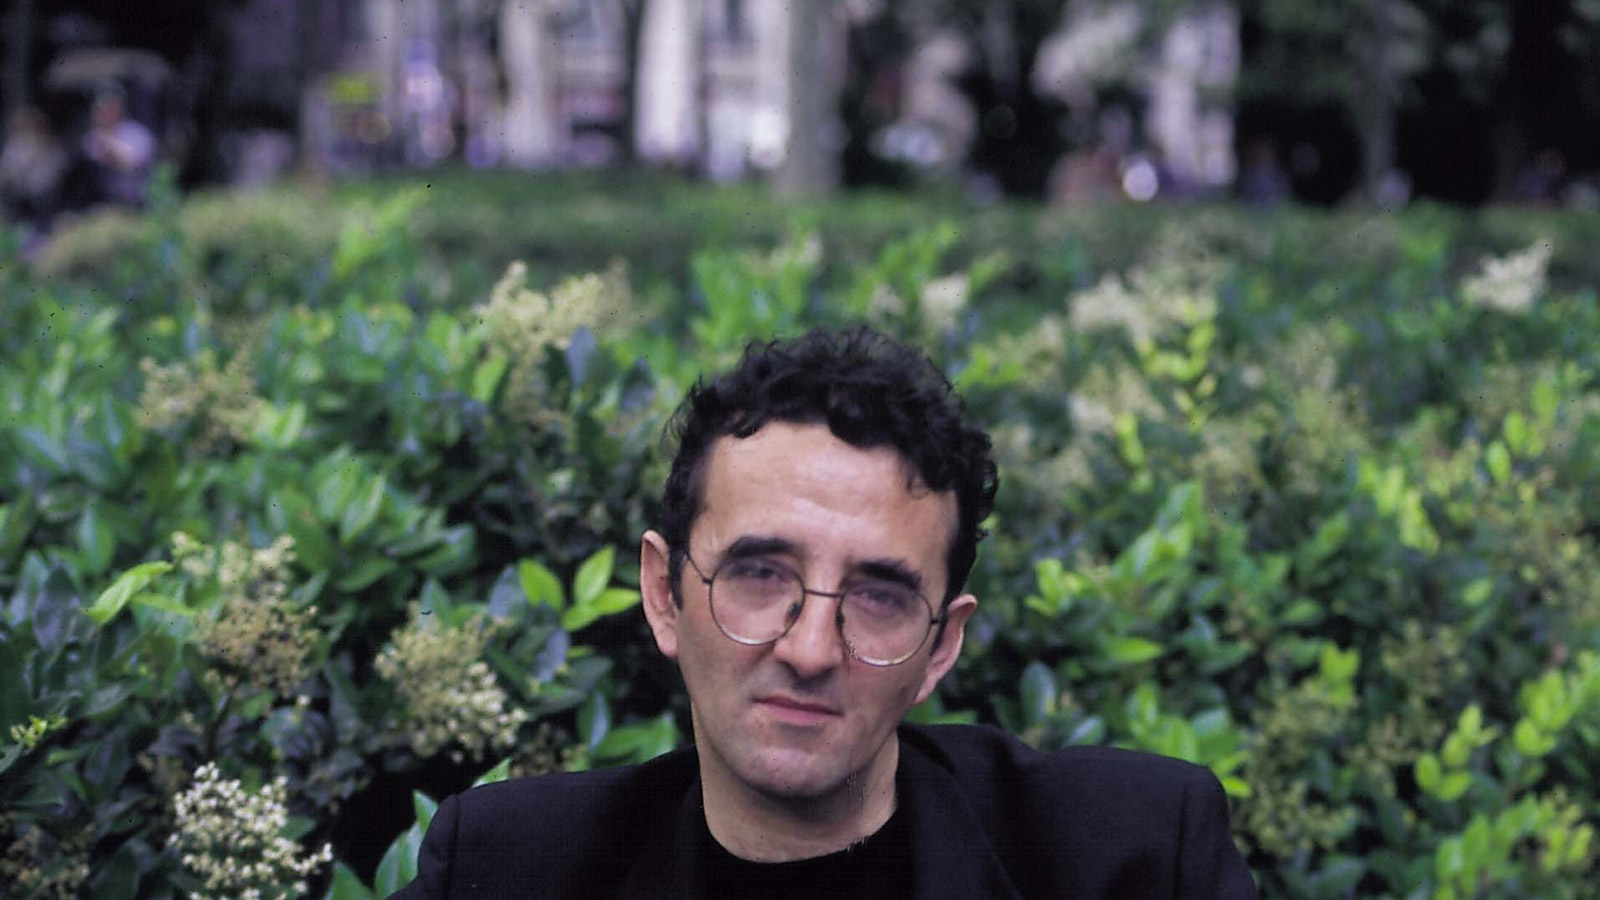 ROBERTO BOLANO, WRITER  Credit:  Luzphoto/Getty Images